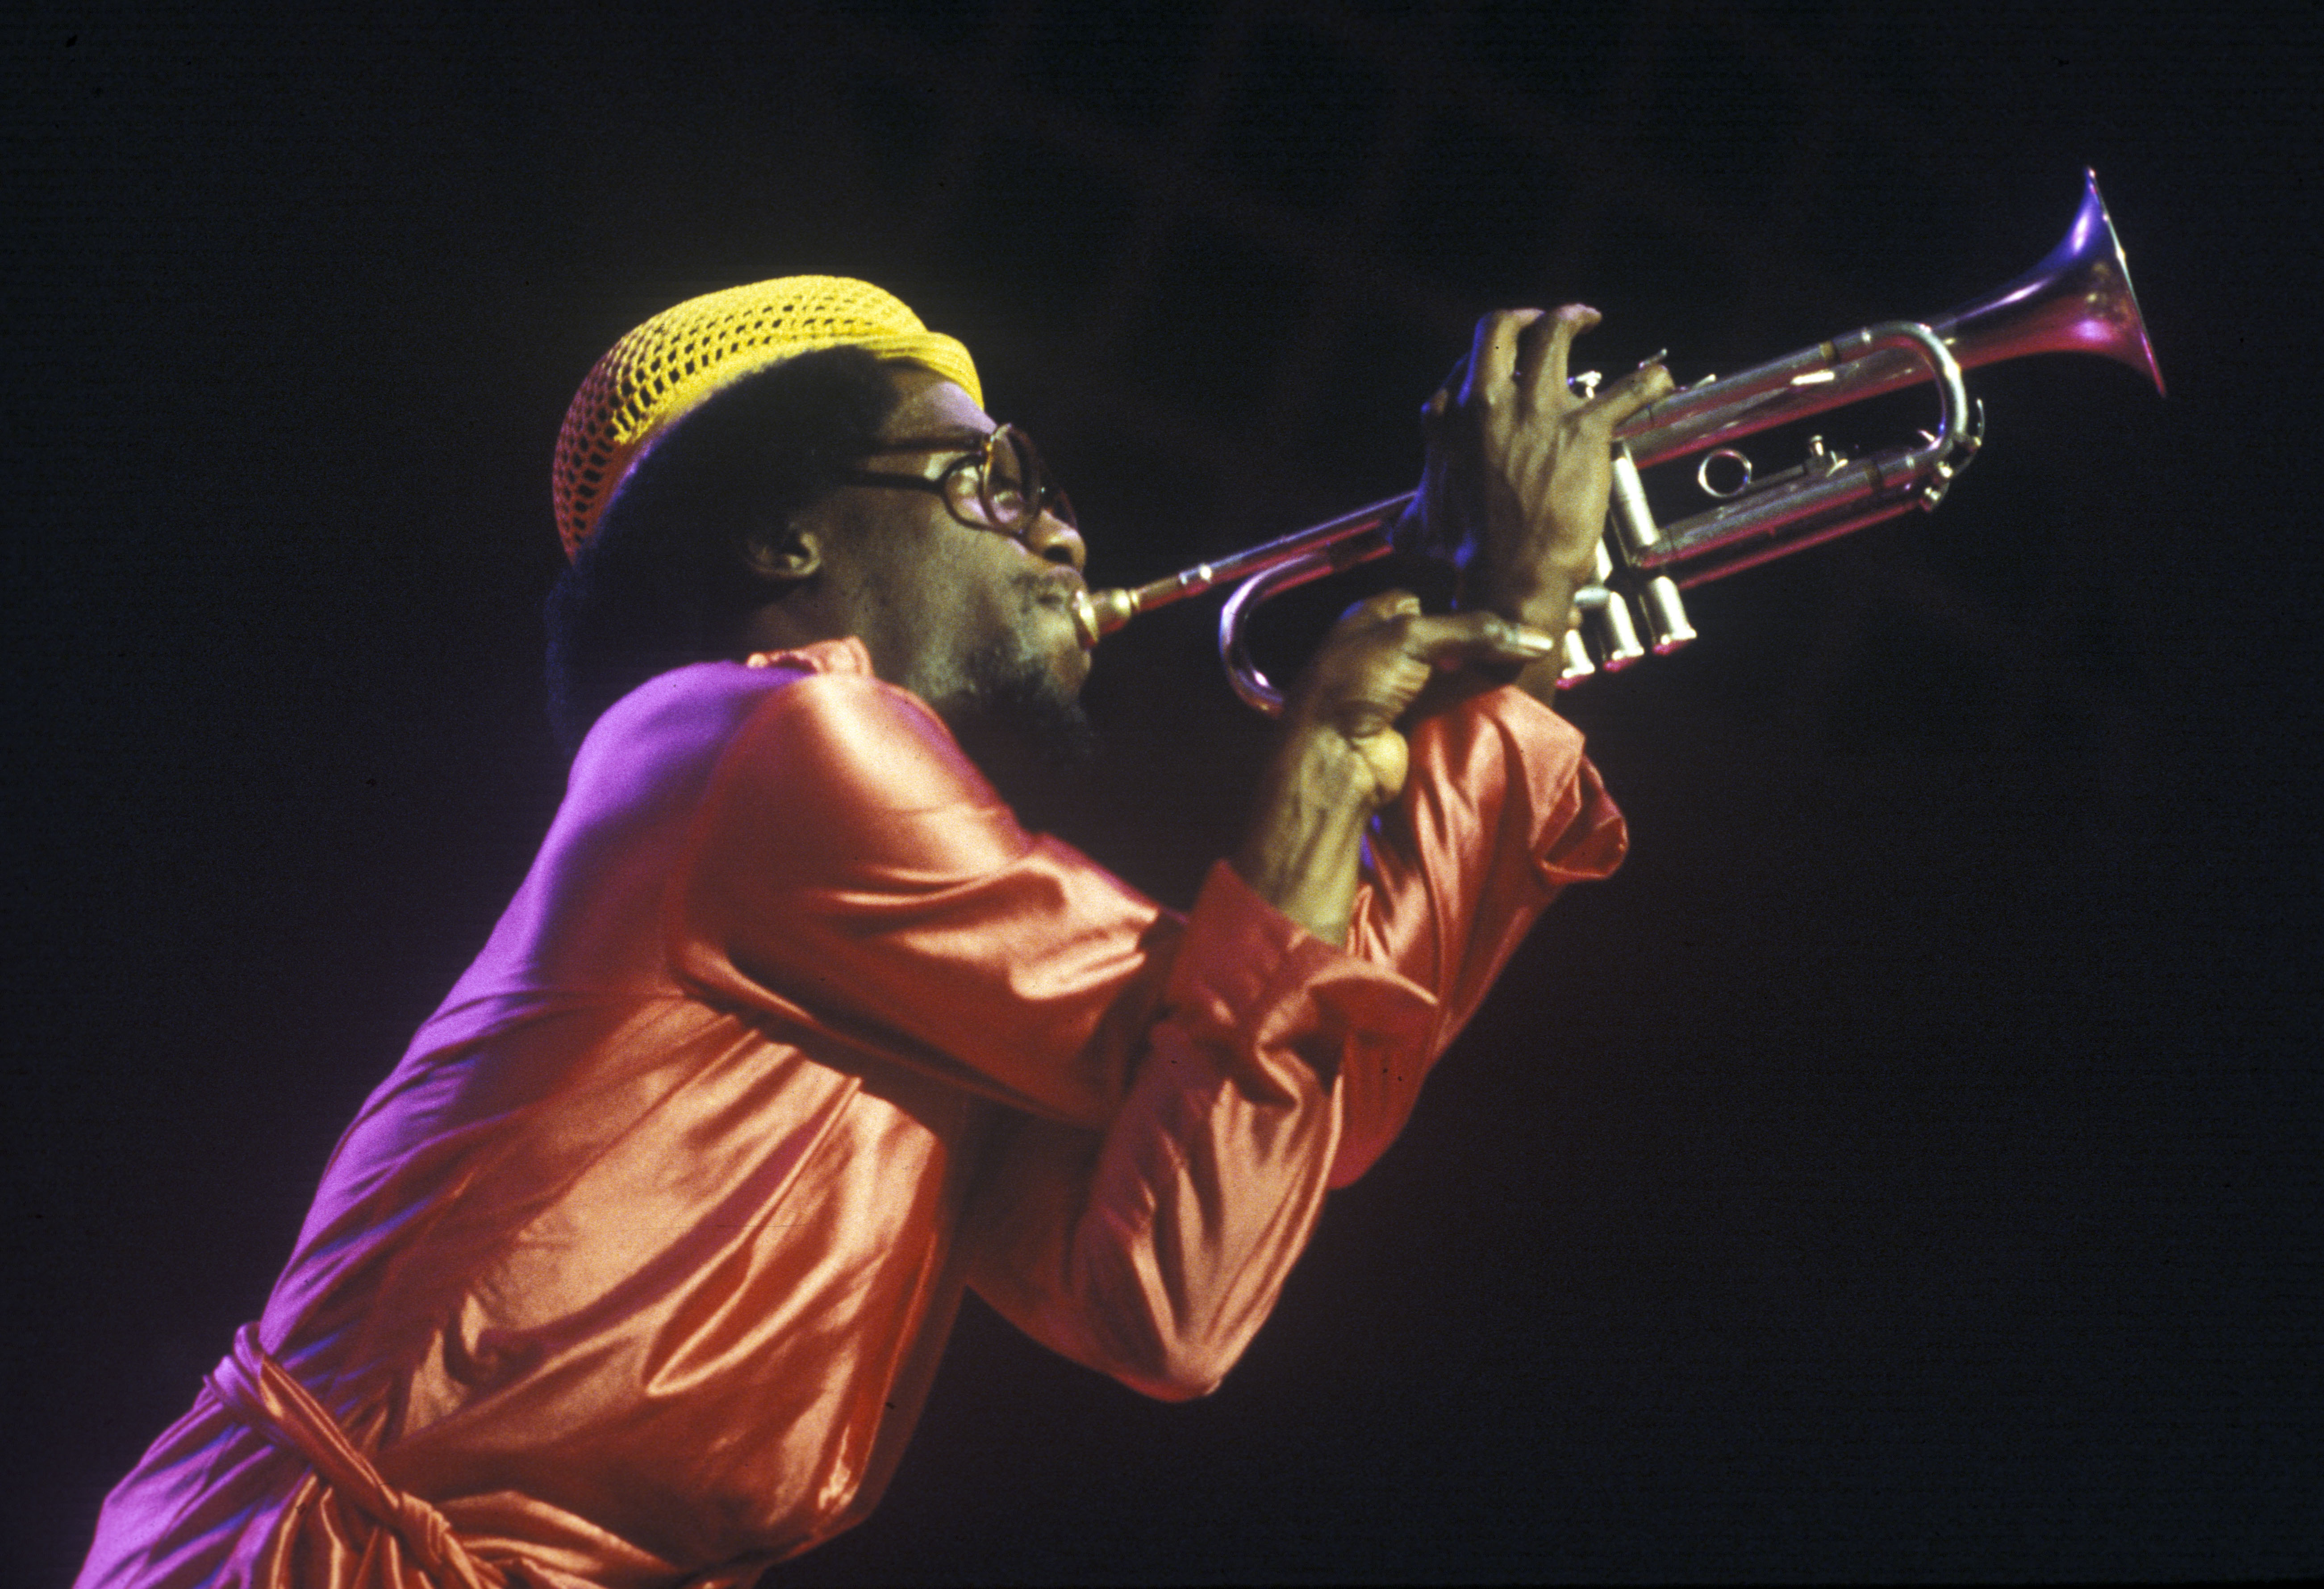 Michael Ray with the Sun Ra Arkestra at Hill Auditorium, September 28, 1979 image